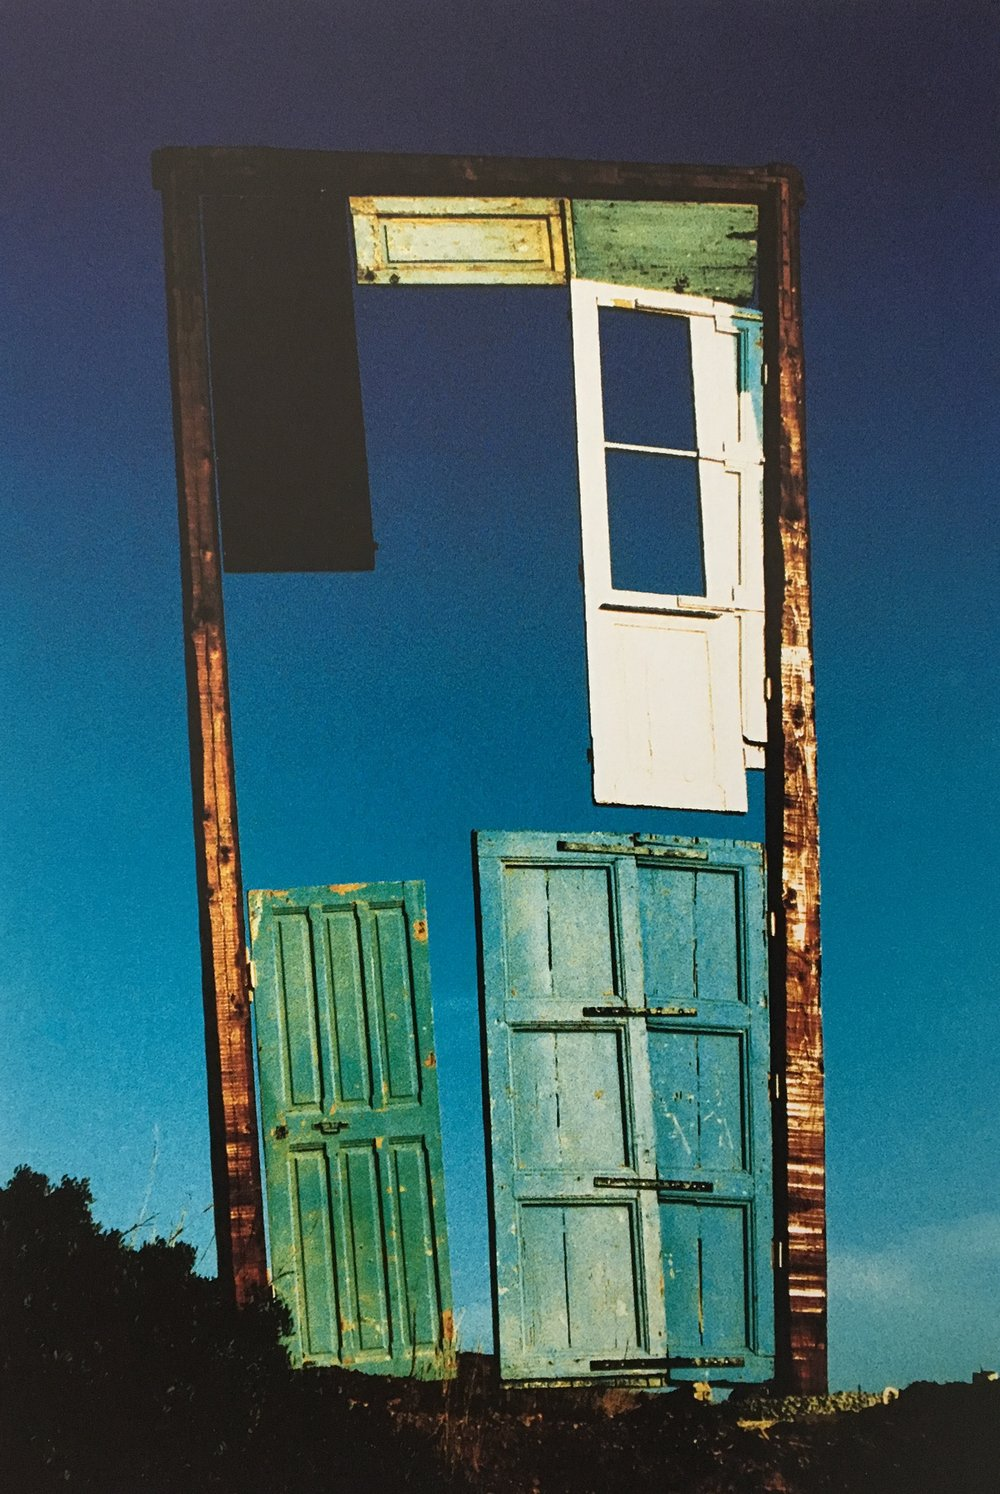 Tor der Winde , 1992, Wood, metal and acrylic paint, 236.22h x 98.42w x 11.81d in (600h x 250w x 30d cm), Private collection, Insel Syros, Kykladen